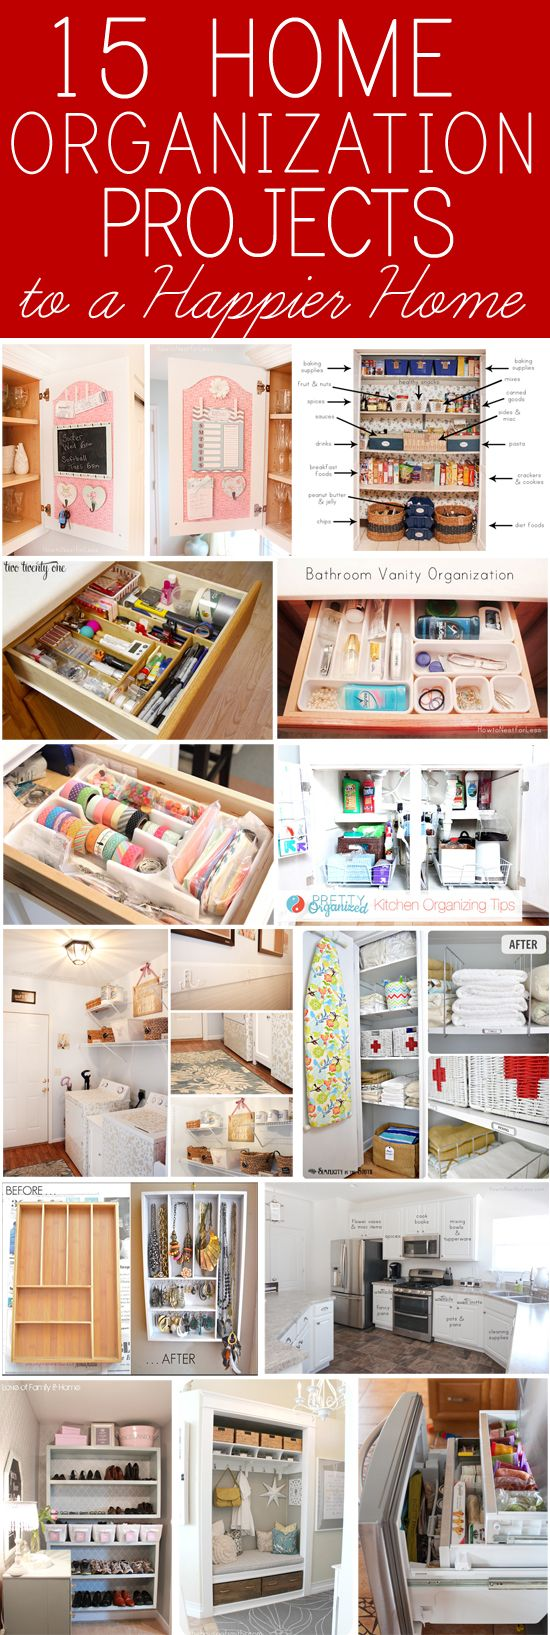 15 home organization projects  Oooh  I so need this